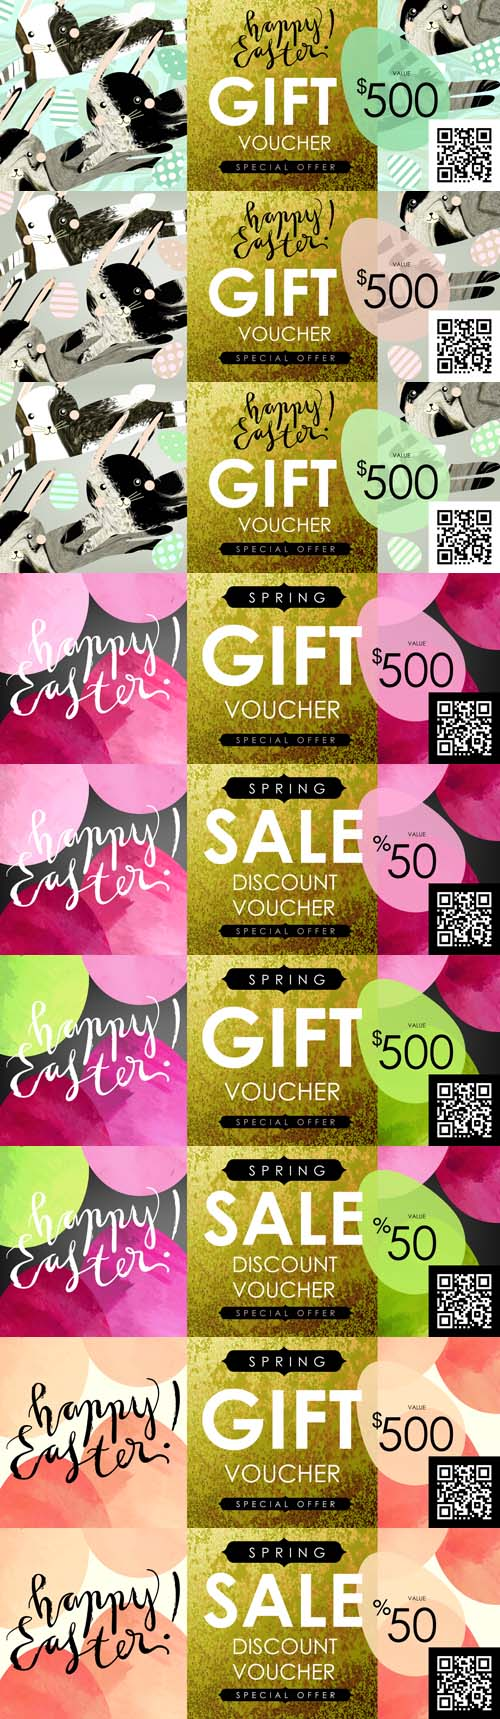 Vector Gift certificate, Voucher, Coupon Template with Festive Eggs and Shabby Gold Texture